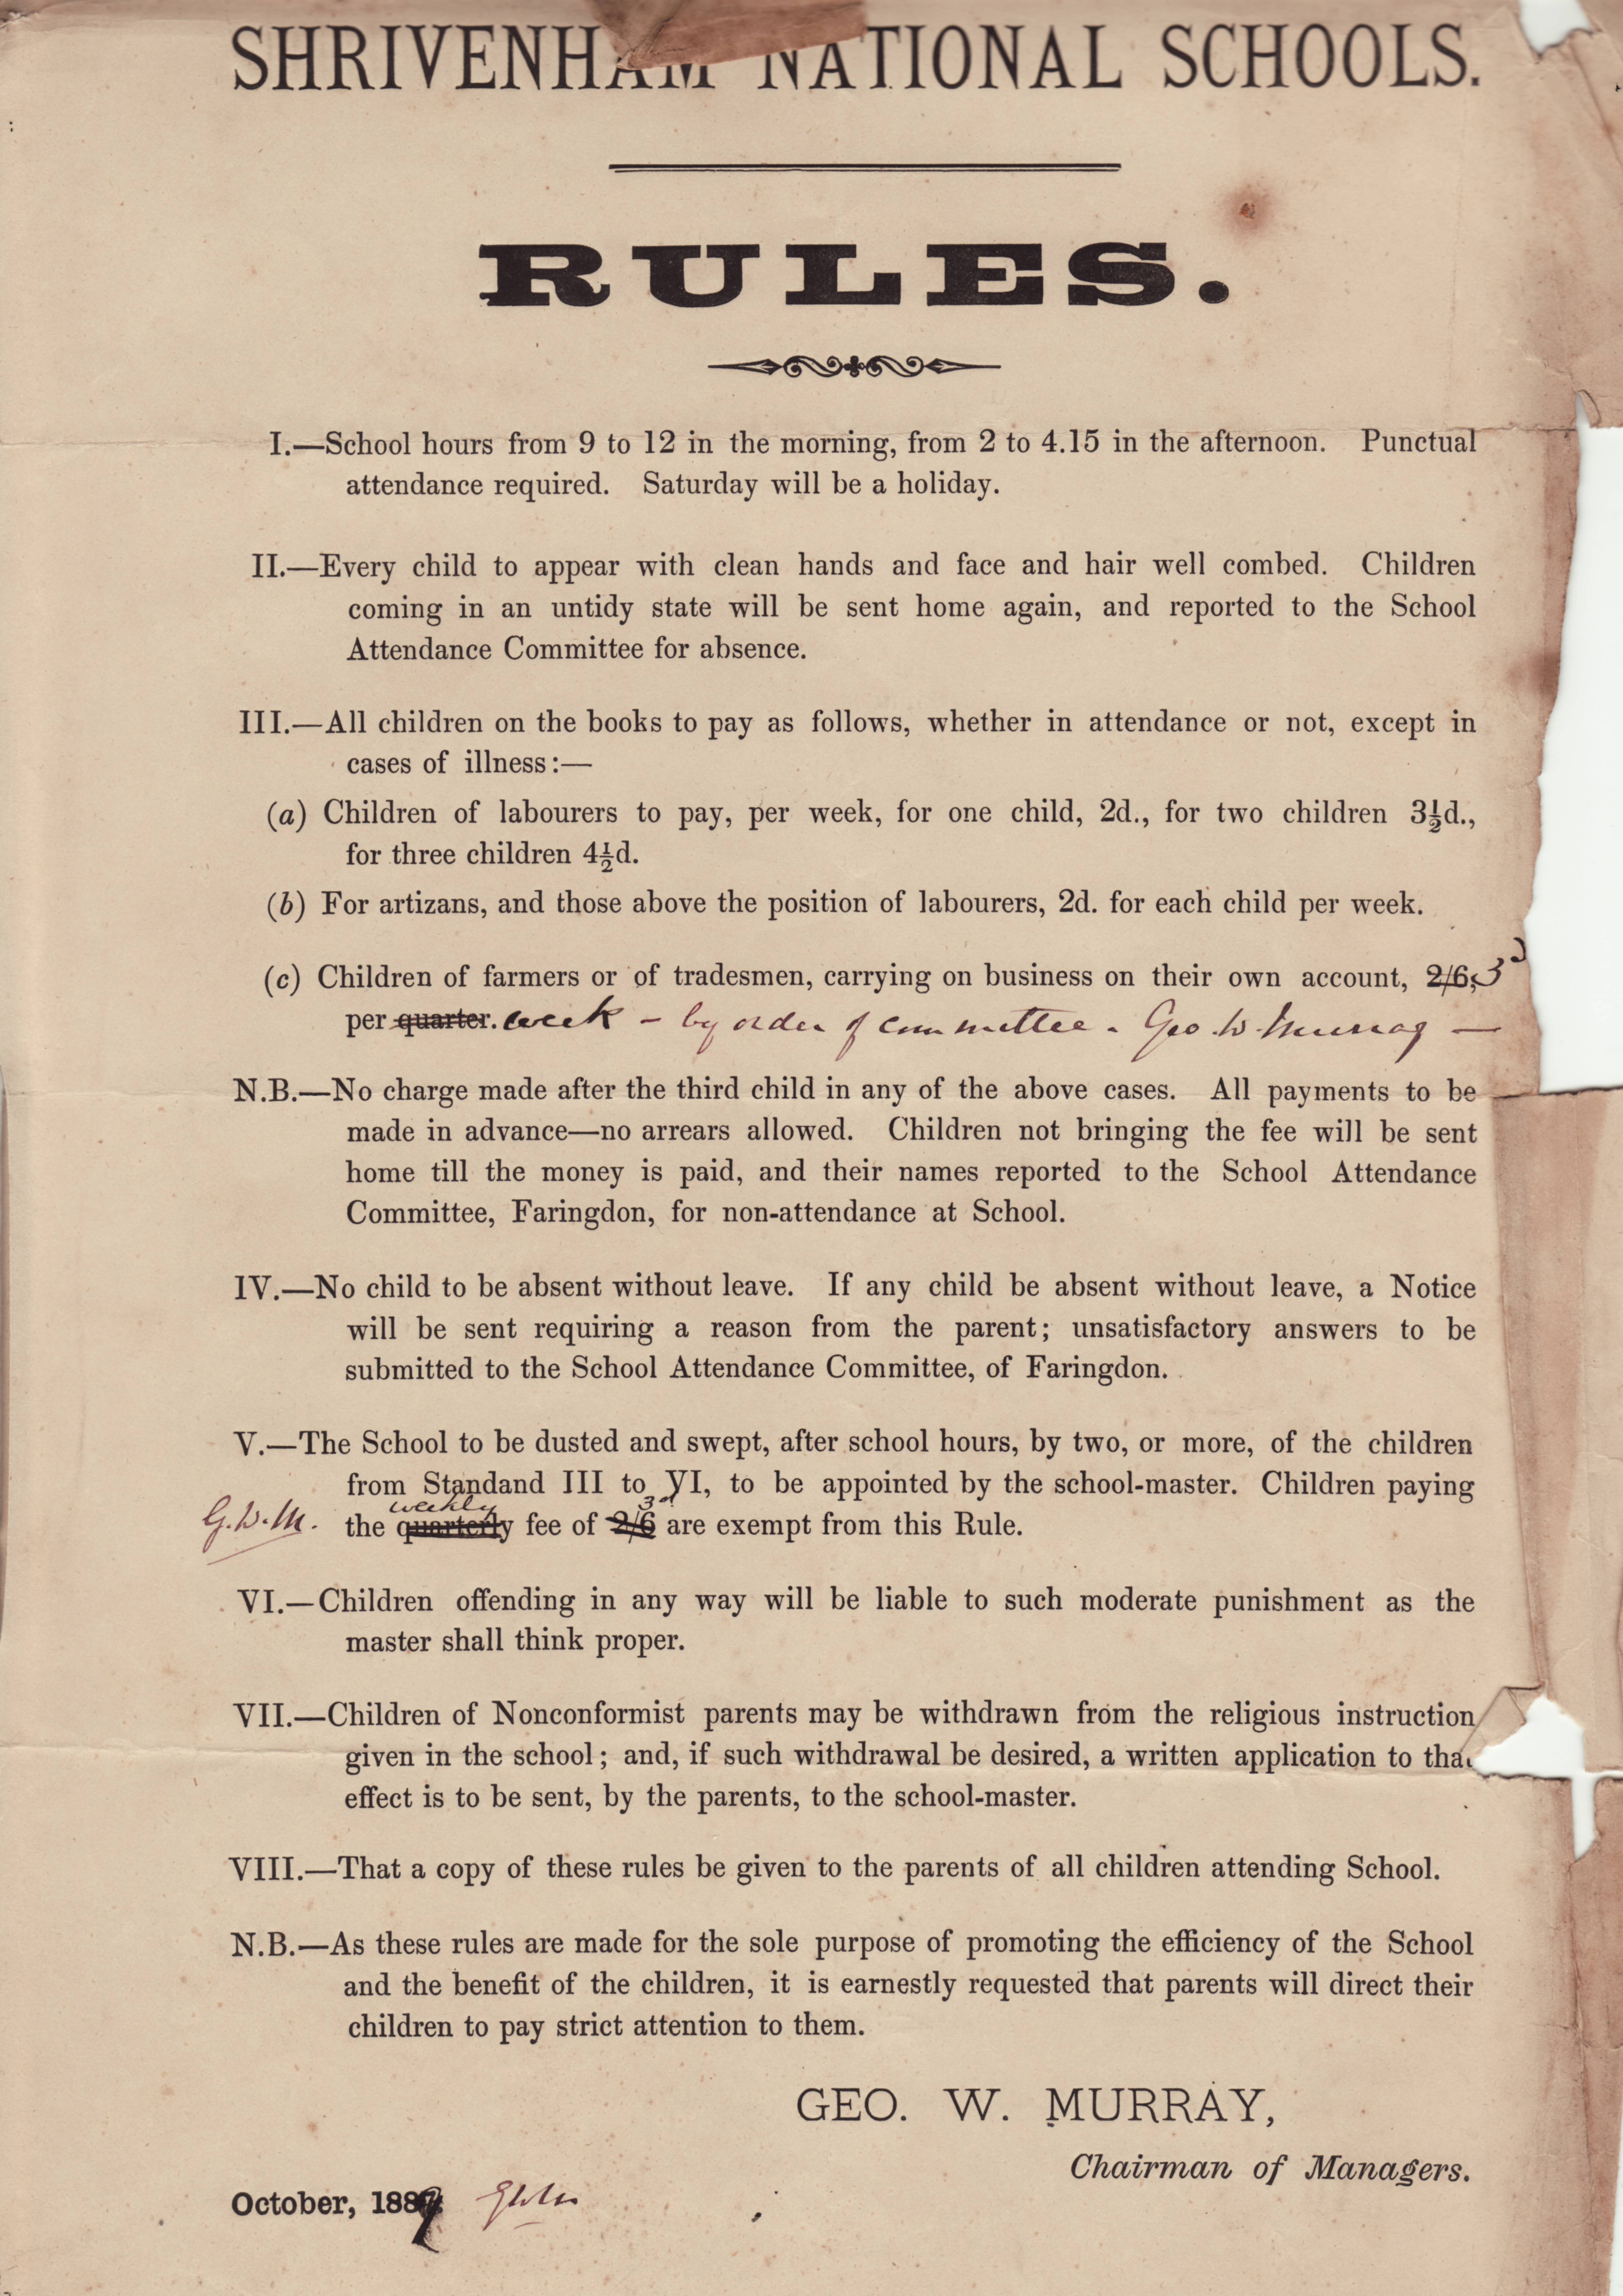 School Rules of 1889